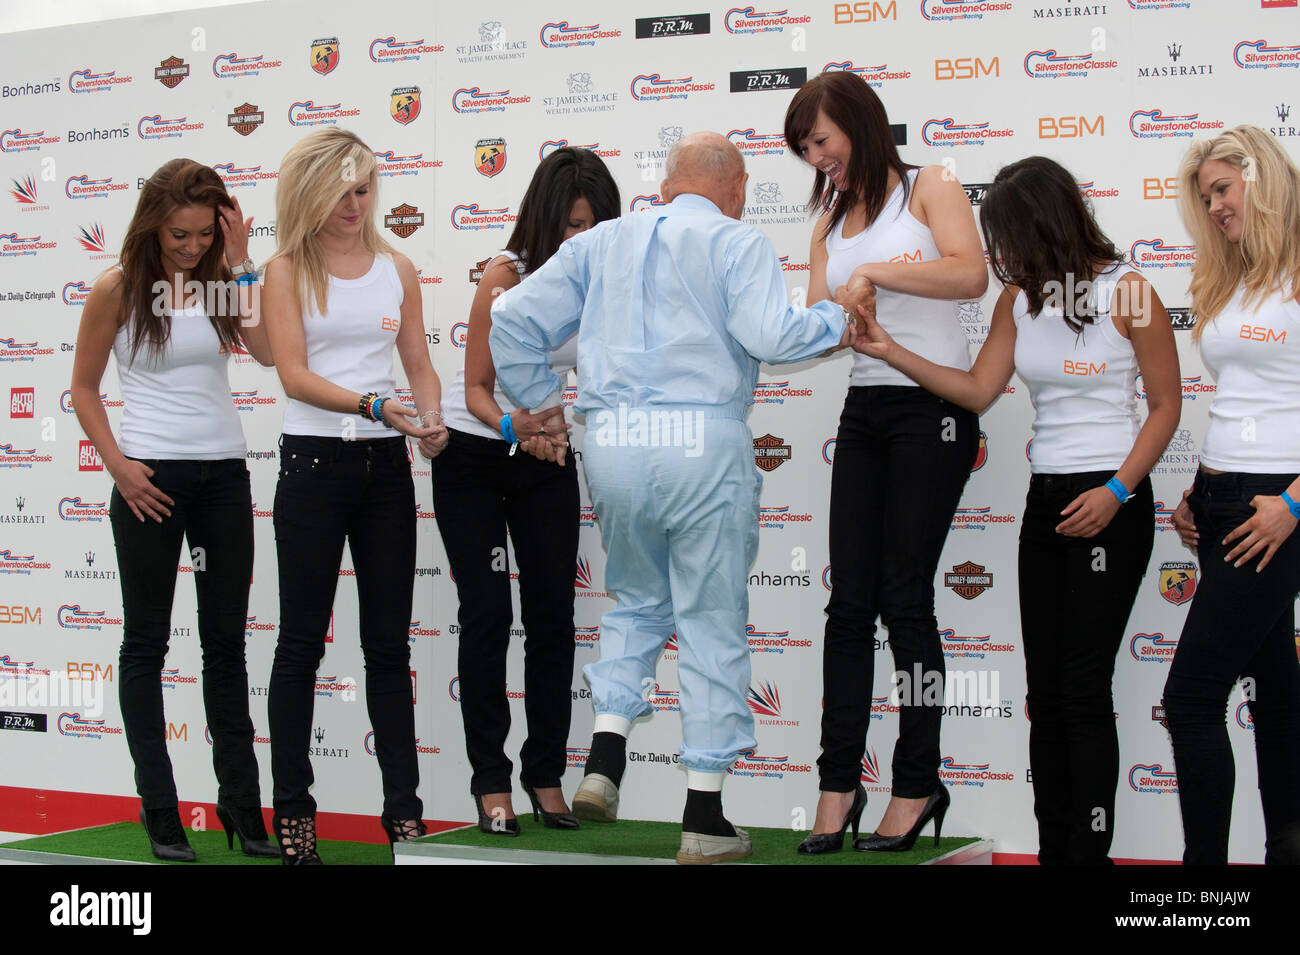 Racing driver Sir Stirling Moss with BSM promotions girls at the Silverstone Classic 2010 motor racing event - Stock Image